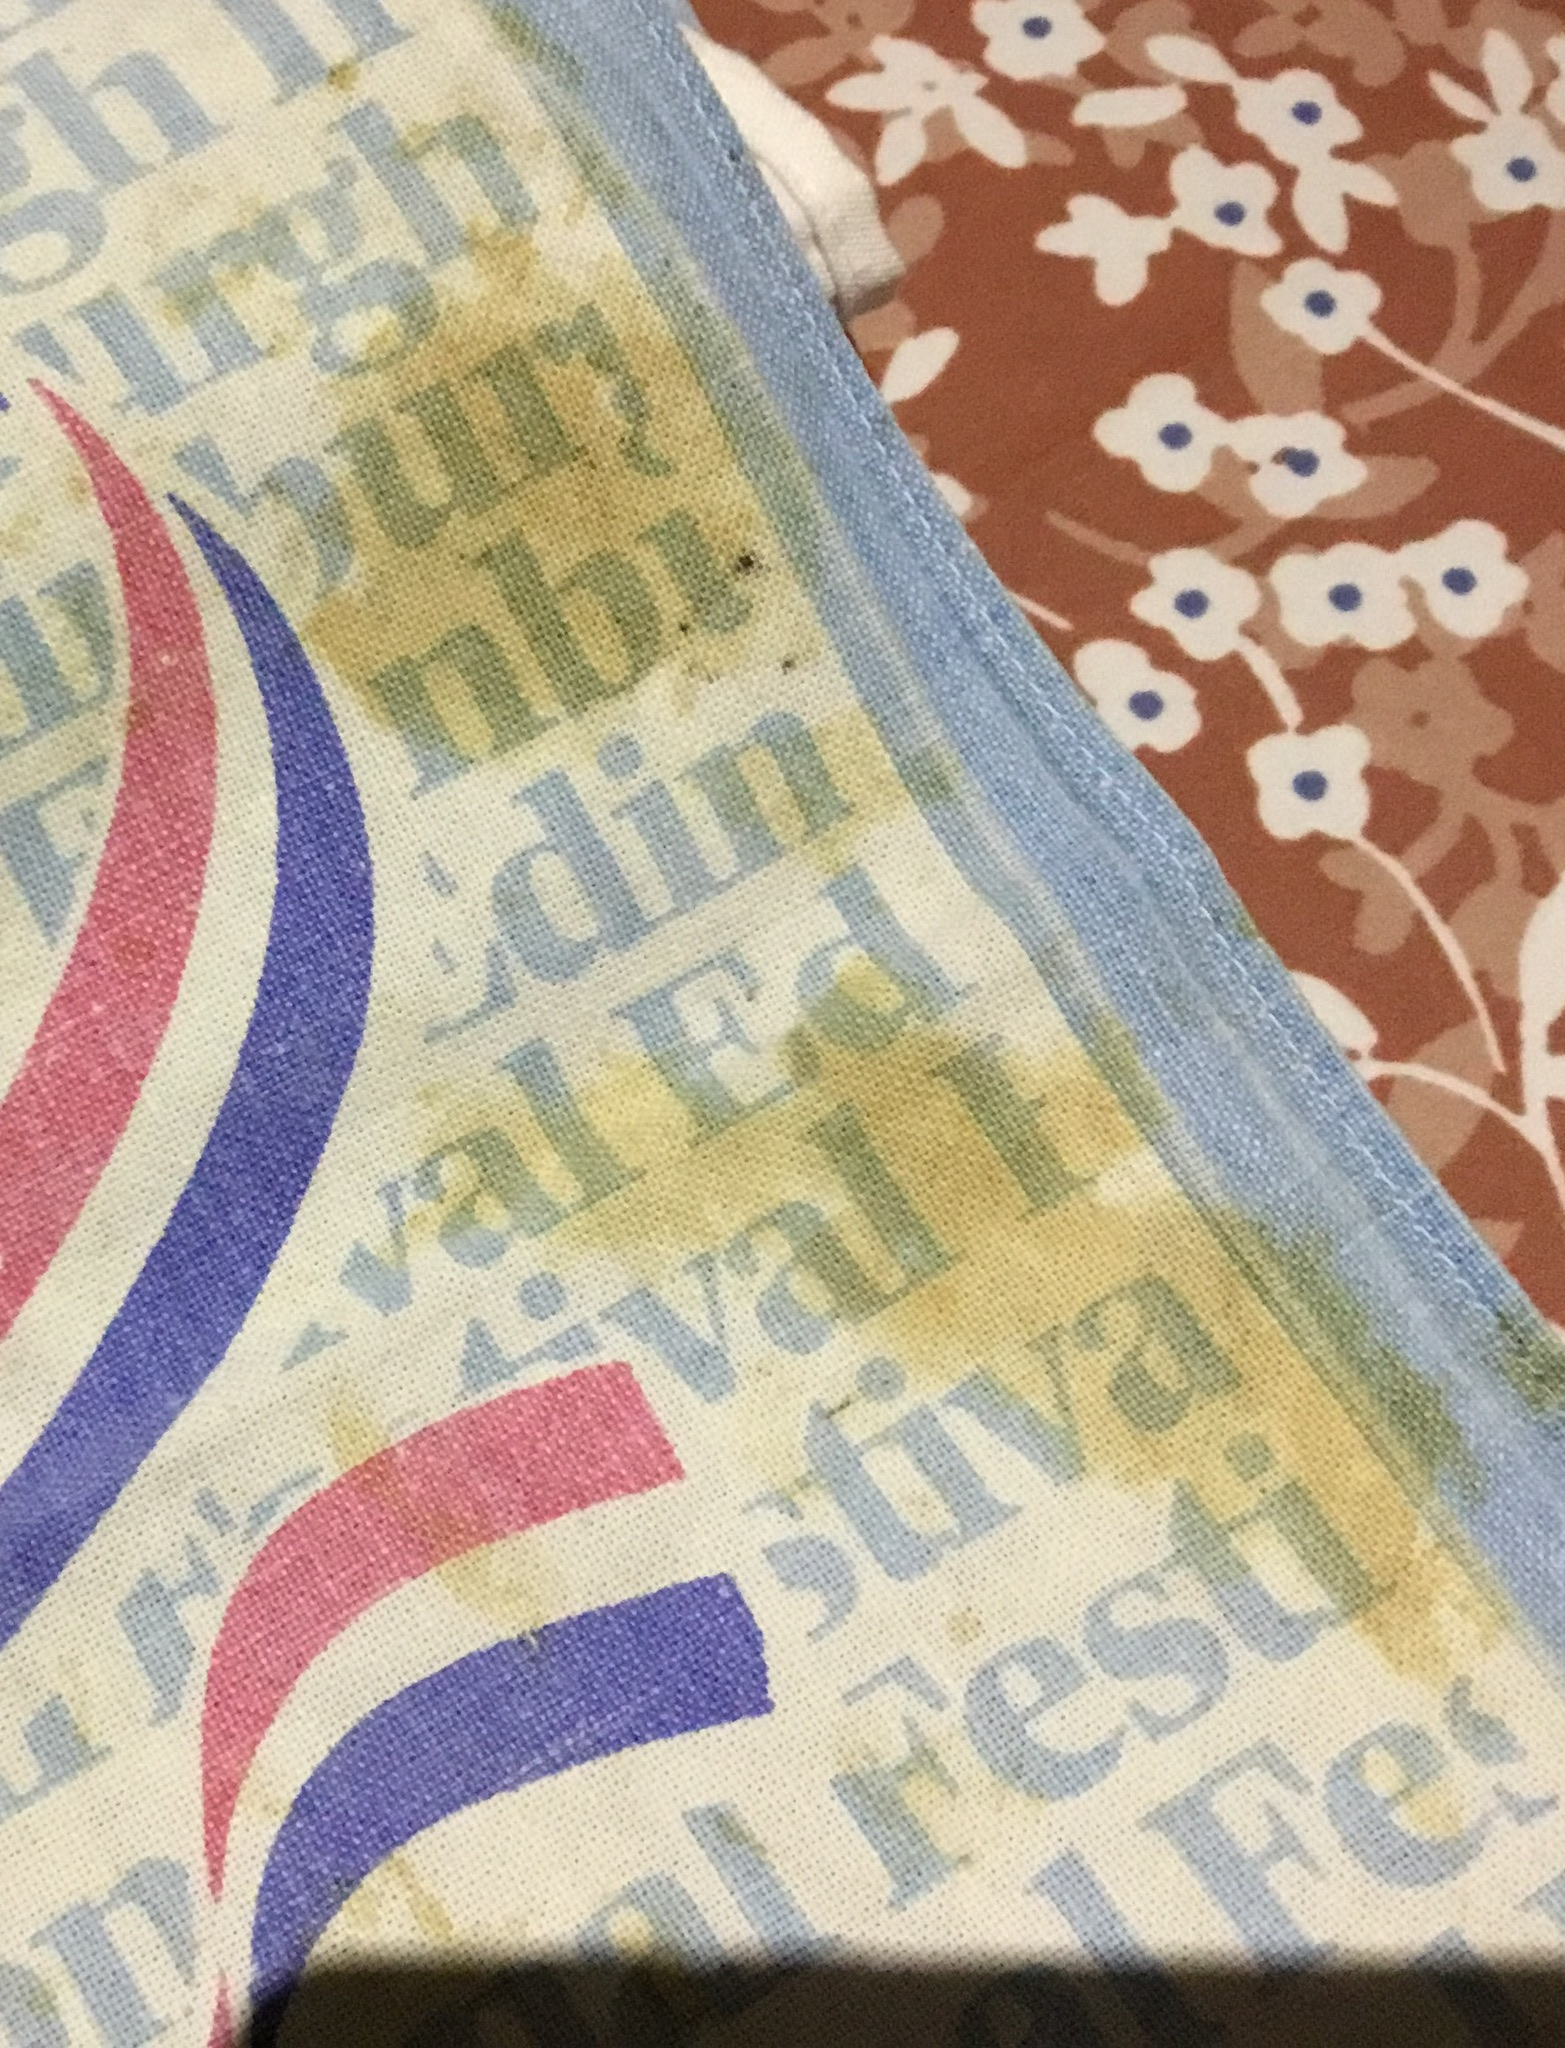 All about tea towels